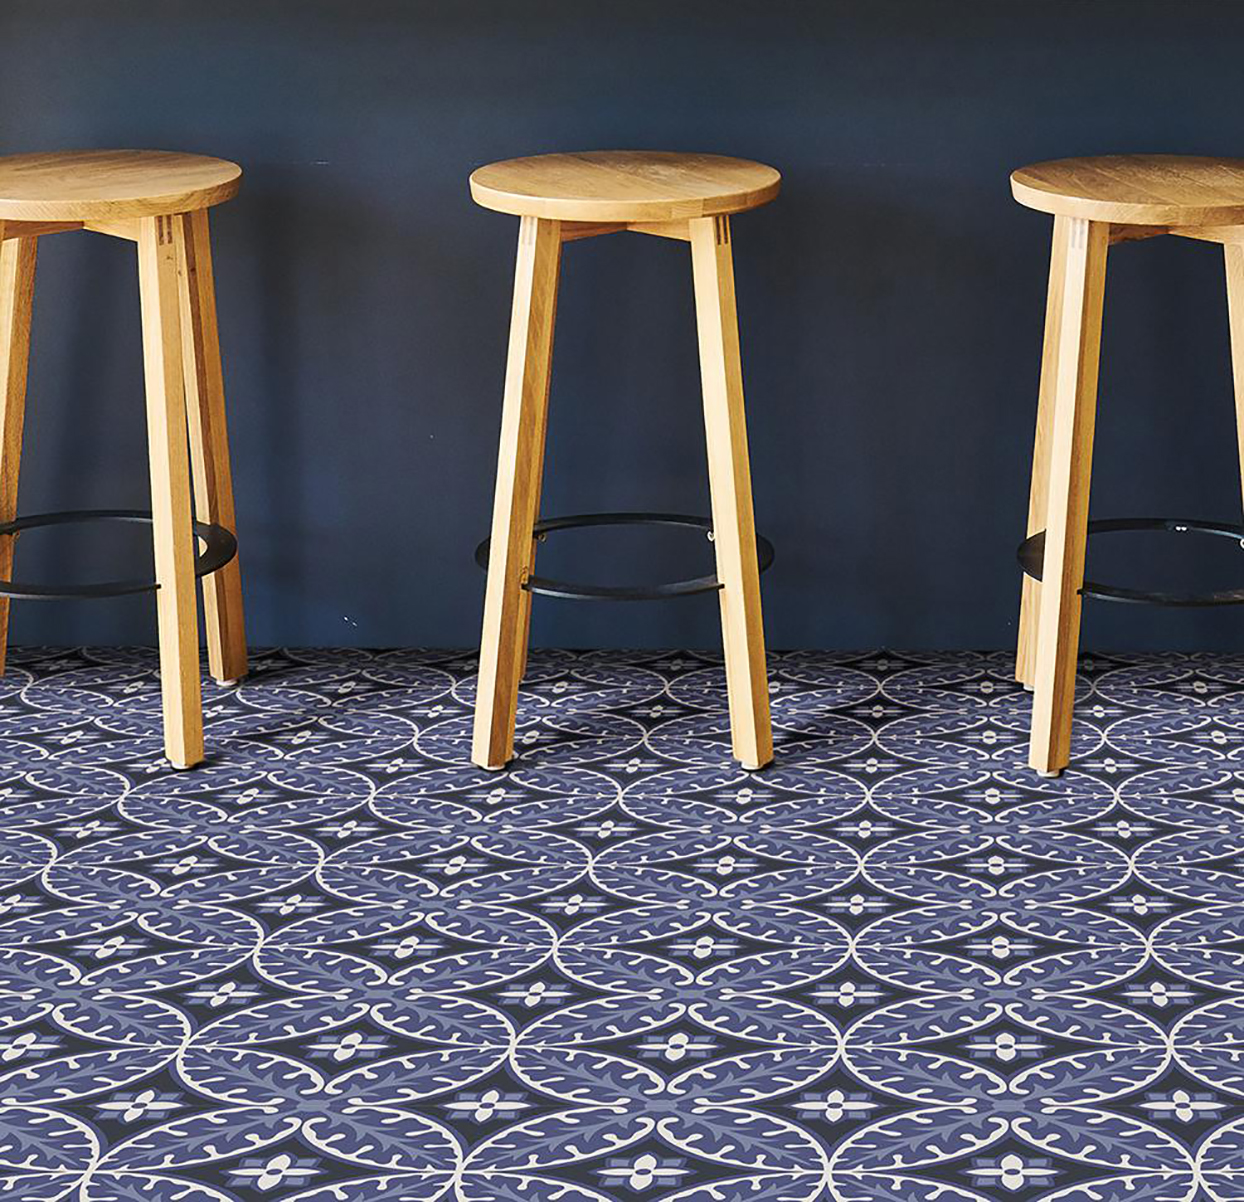 blue patterned peel and stick tile floors